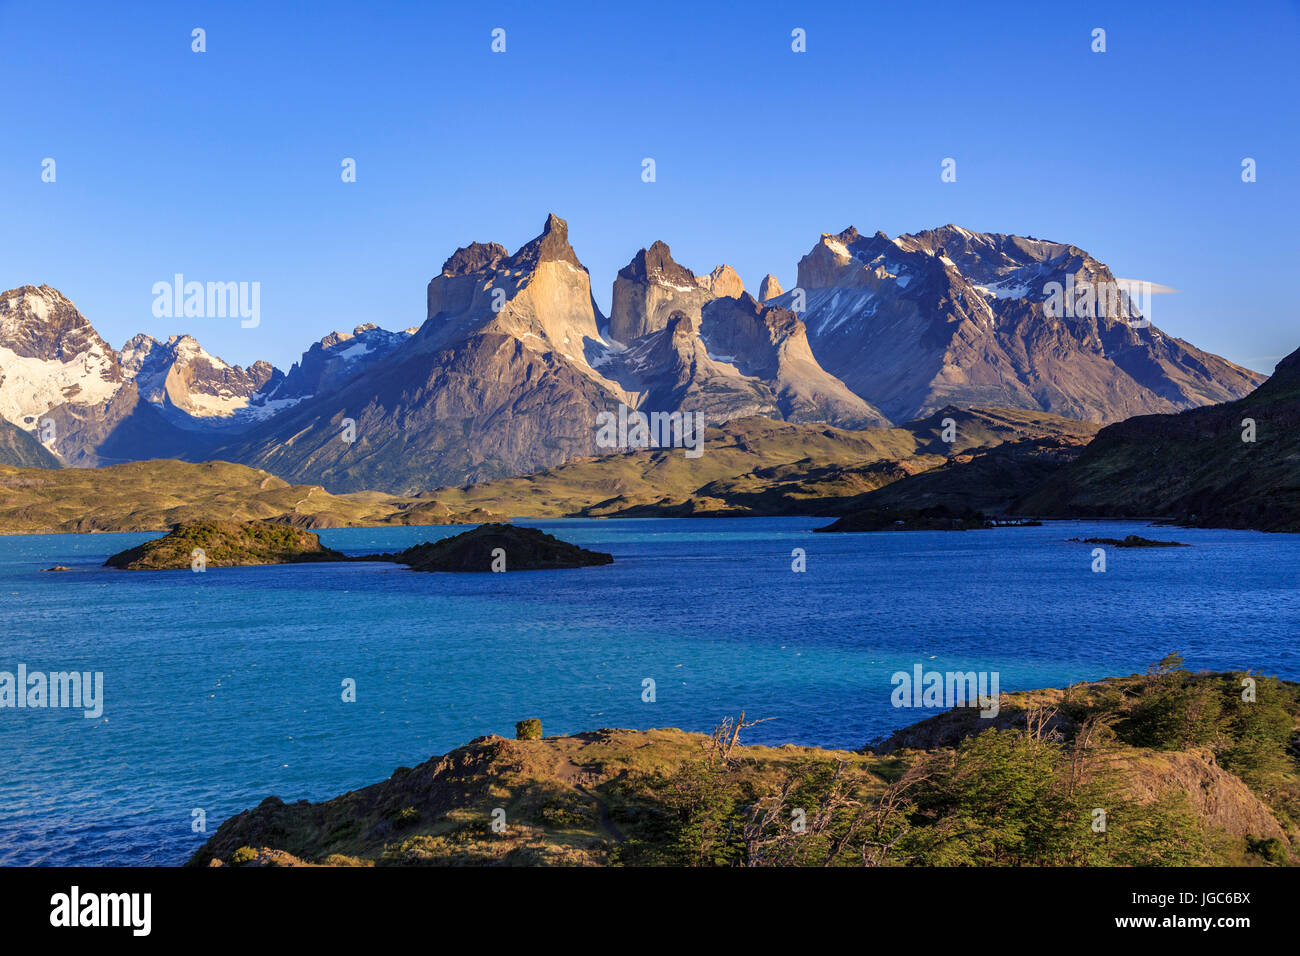 Lago Pehoe, Torres del Paine National Park, Patagonia, Chile Stock Photo